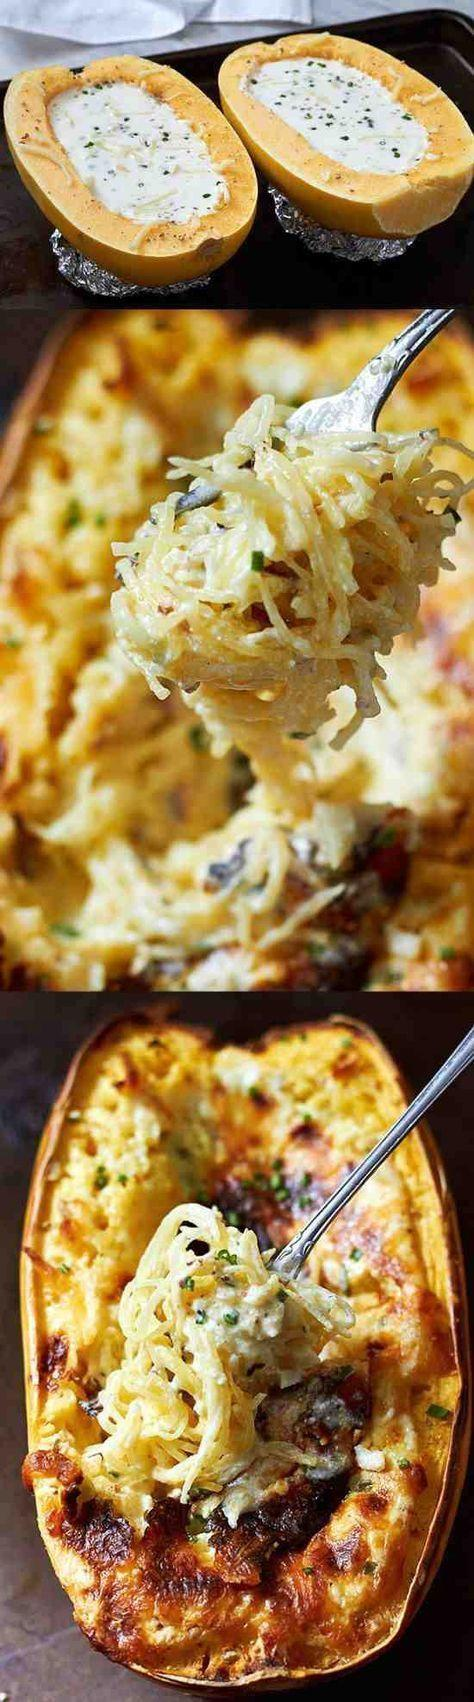 Baked Four Cheese Garlic Spaghetti Squash. Stuffed with a creamy garlic and 4-cheese sauce, super easy to make!